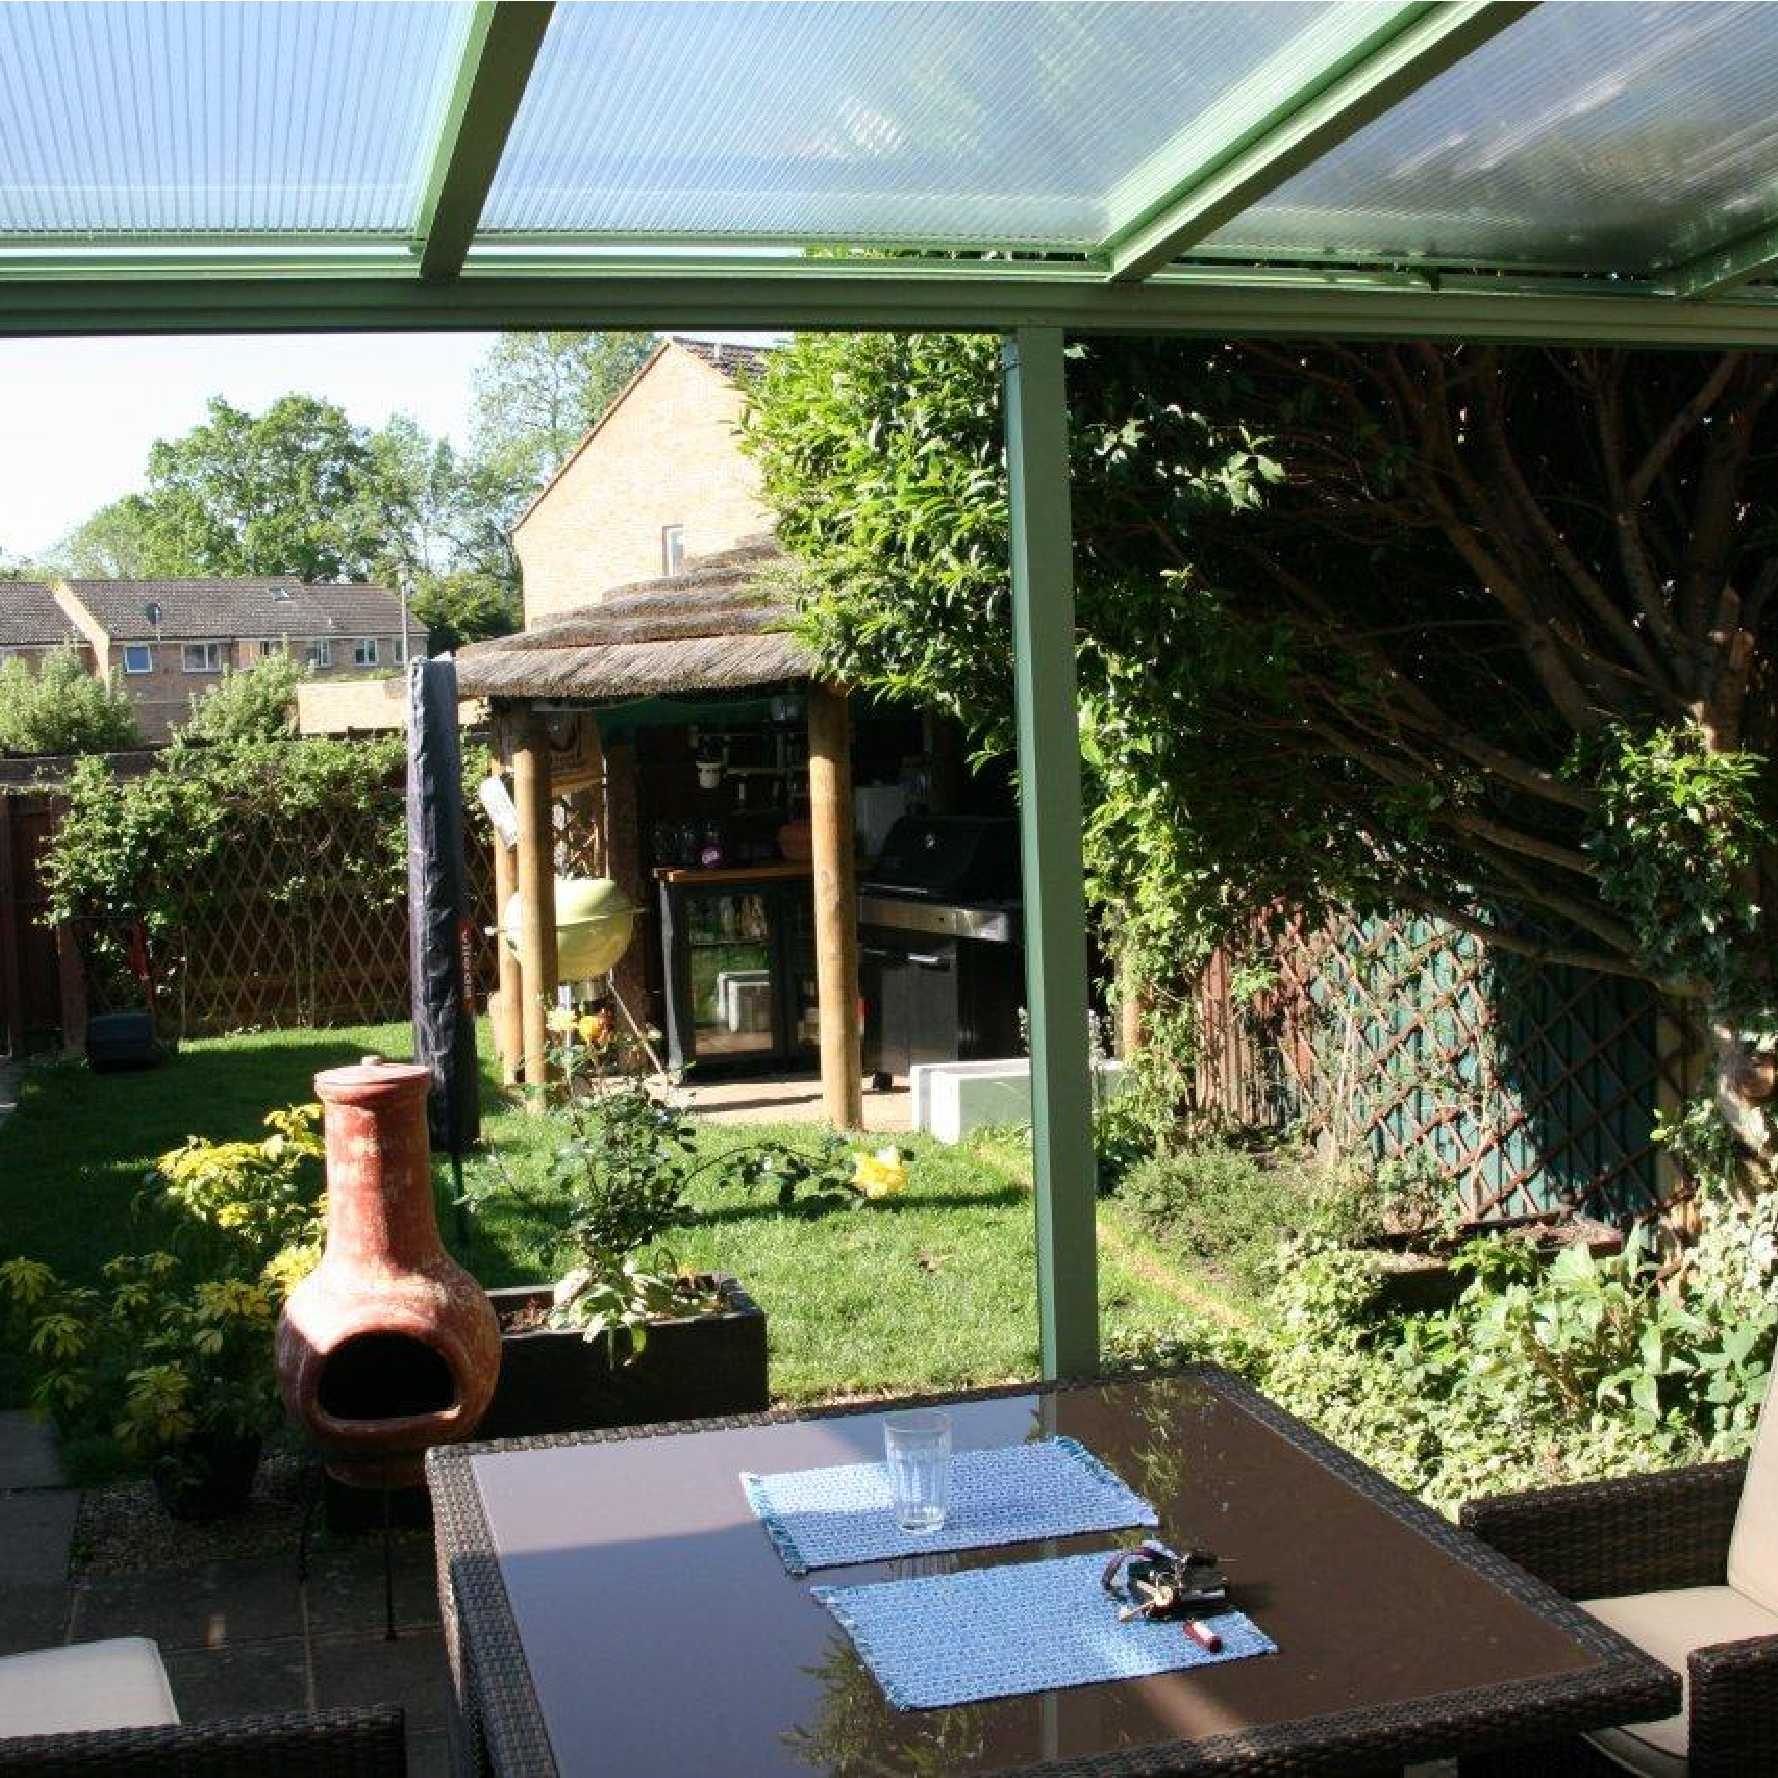 Affordable Omega Smart White Lean-To Canopy with 16mm Polycarbonate Glazing - 11.4m (W) x 4.0m (P), (5) Supporting Posts